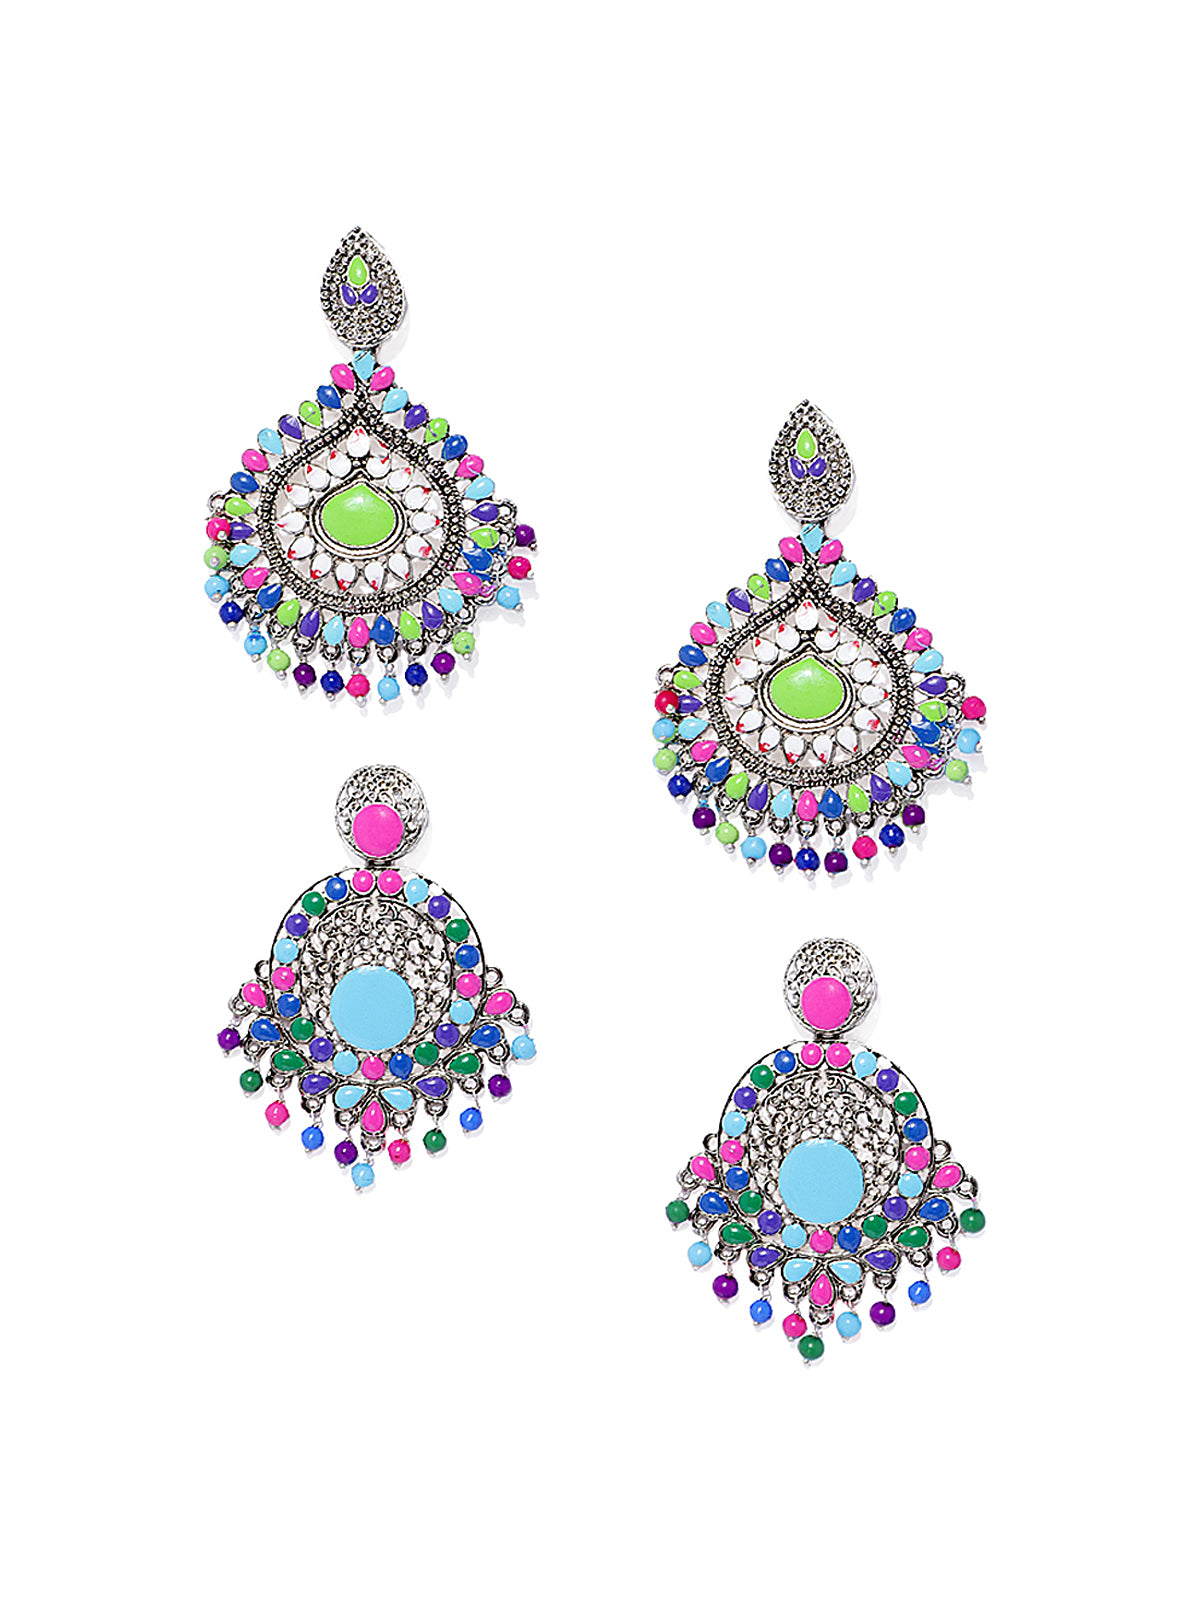 Combo Of 2 Zaveri Pearls Antique Silver Tone Mesmerising Dangle Earring-ZAVERI PEARLS1-Earring